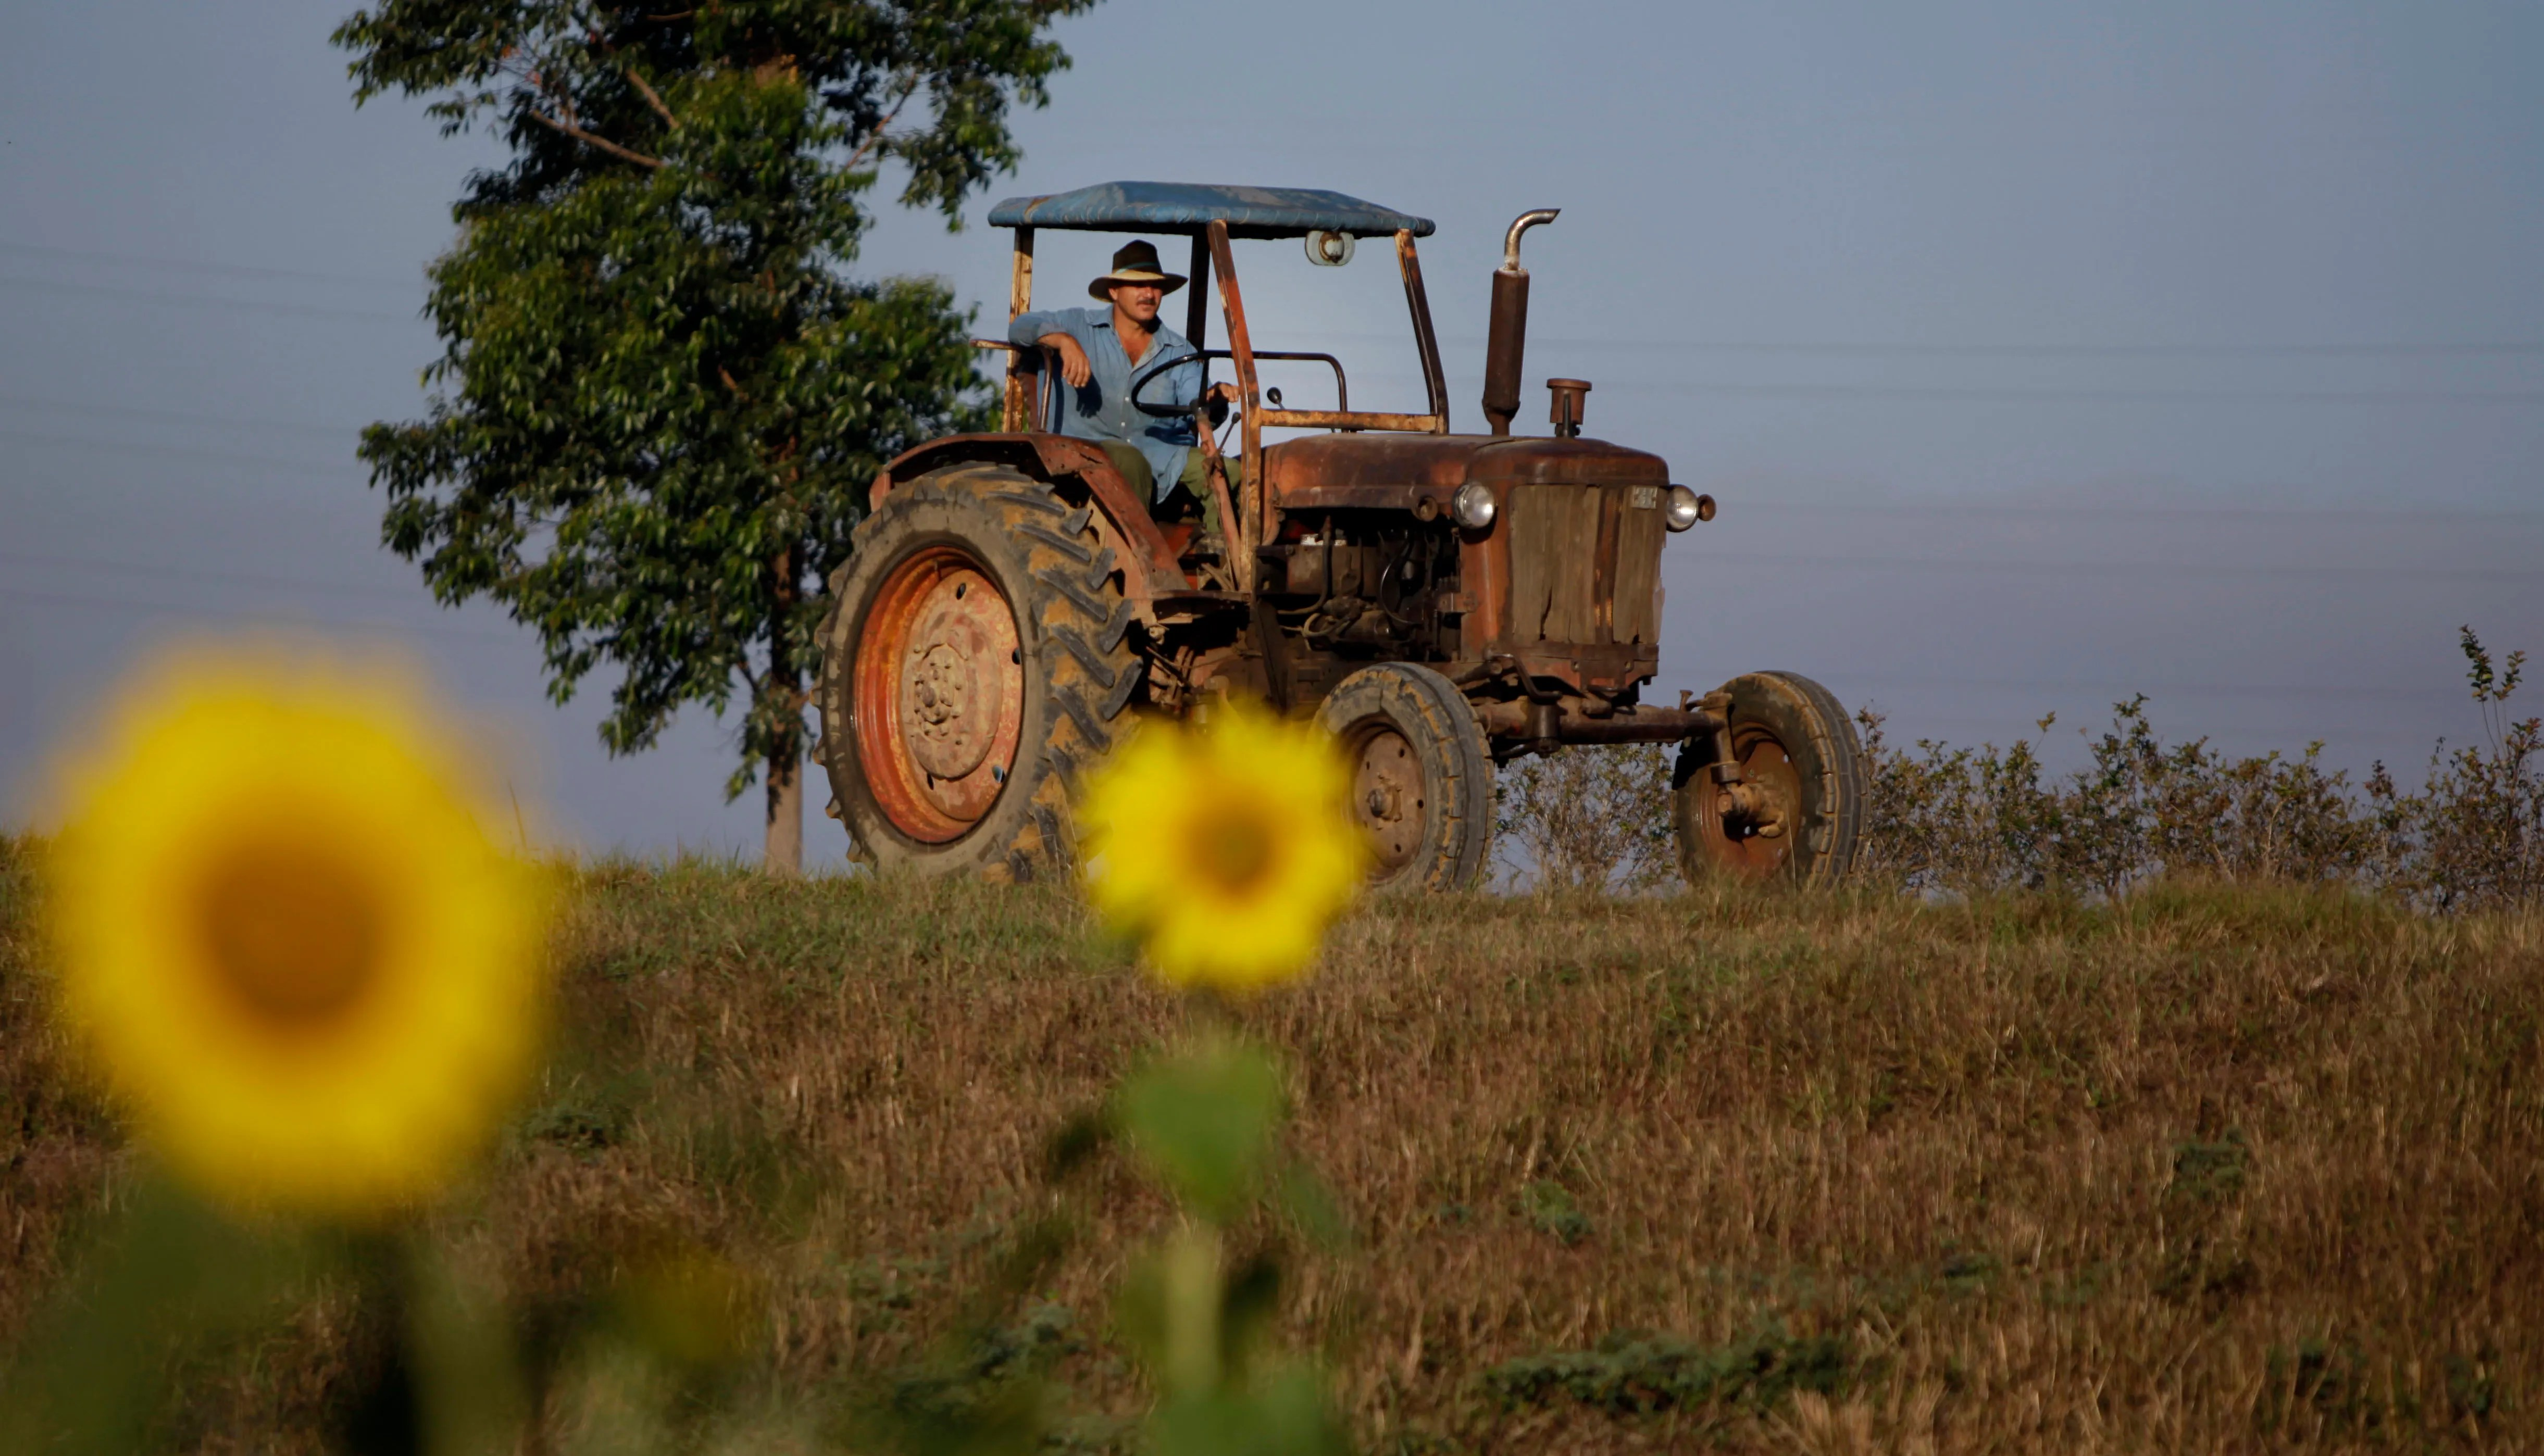 The aging equipment of Cuban farmers spurred two Americans to come up with a plan to build small tractors and other machinery in Cuba. (Javier Galeano/AP)